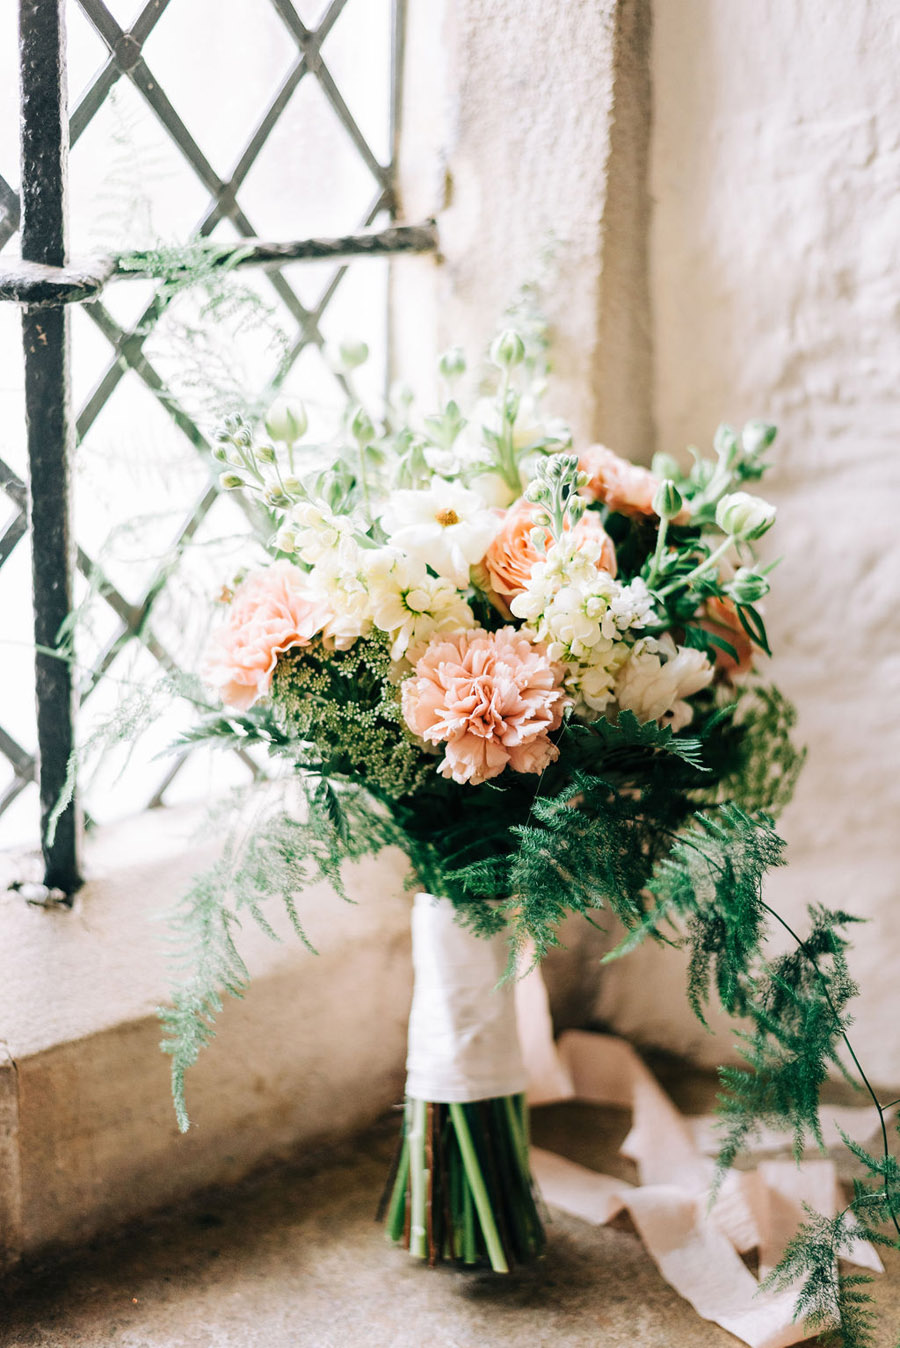 coral and neutral colour palette for a stunning wedding look with Corky and Prince, image credit Rachel Jane Photography (20)